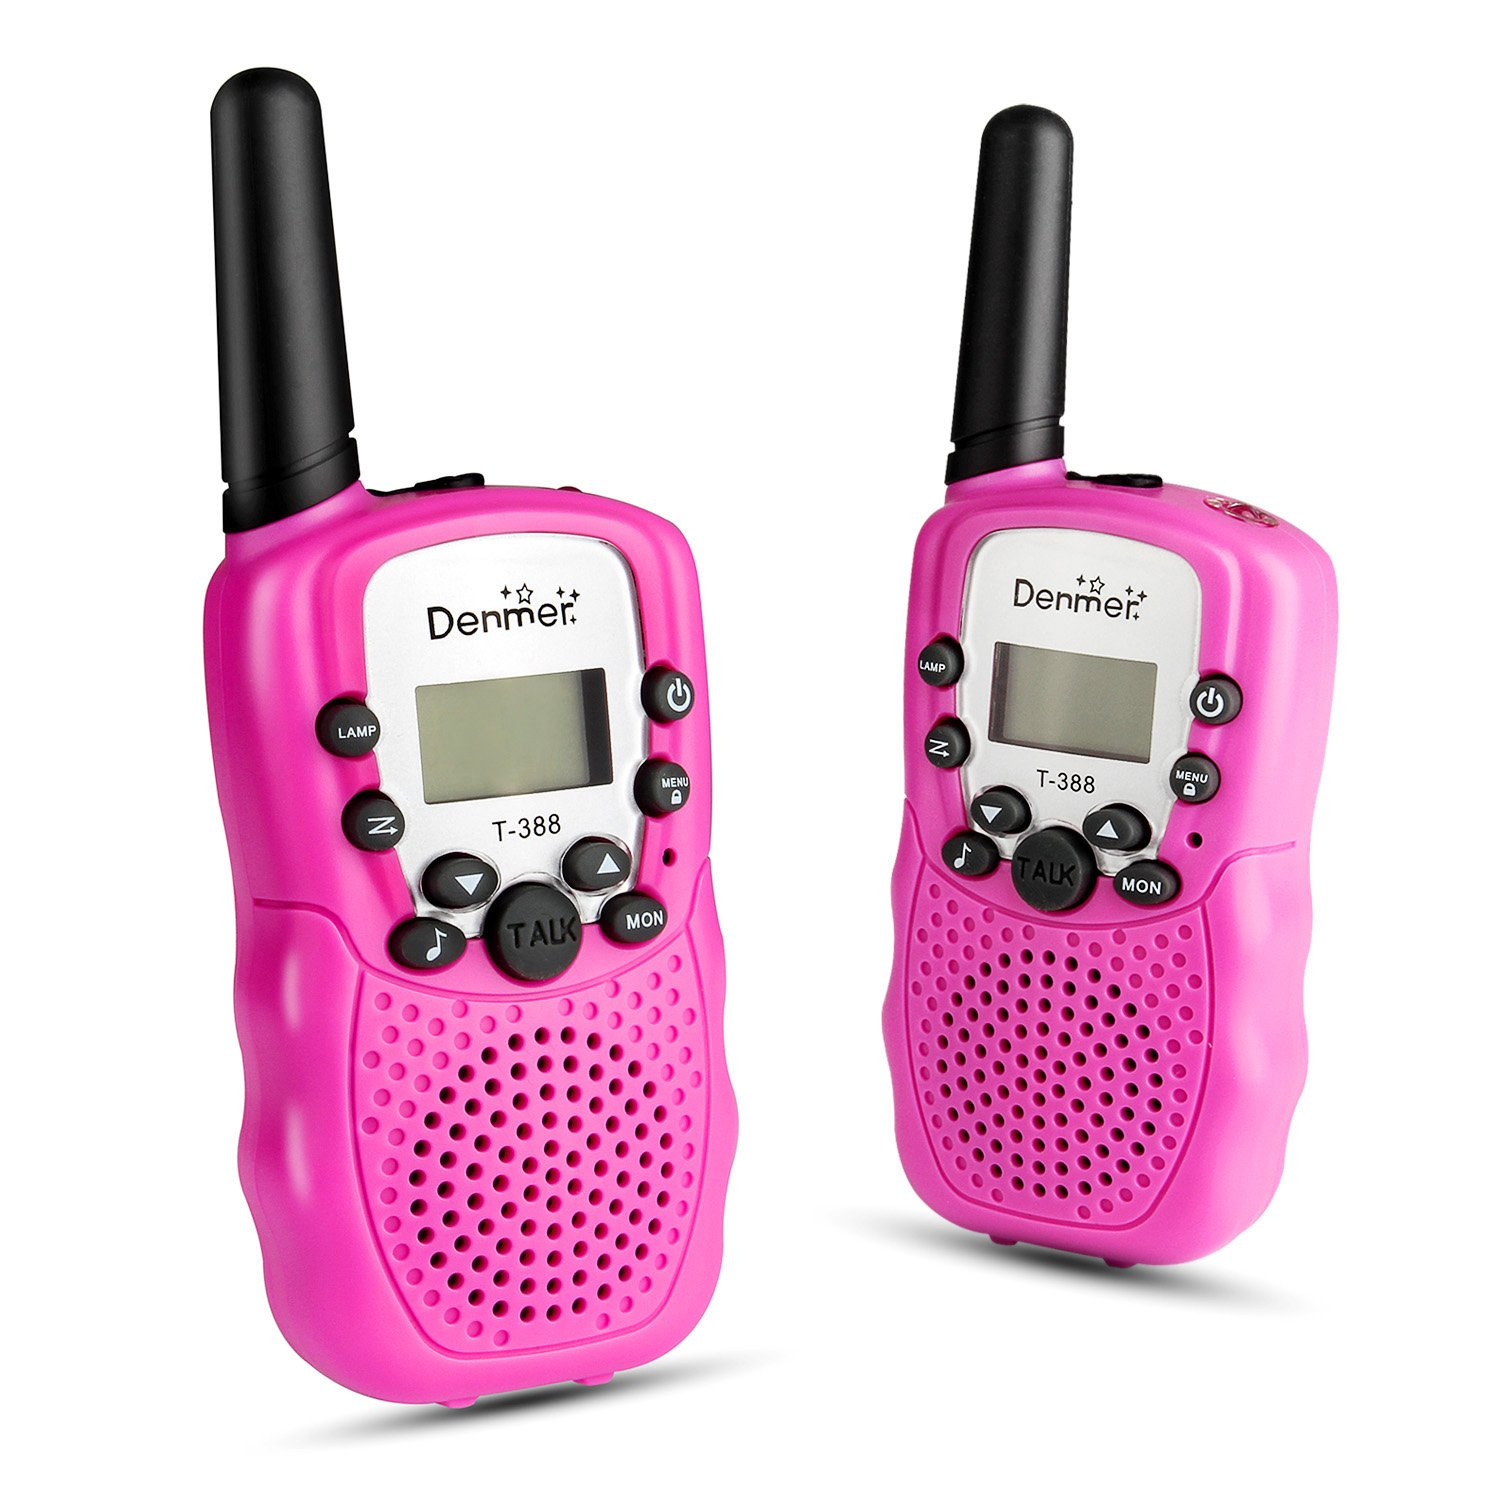 Denmer Two-Way Radios Mini Walkie Talkie 3-5KM Range 22-Channel FRS/GMRS UHF Two-Way Radios Colorful Walkie-Talkie for Kids(Pink)